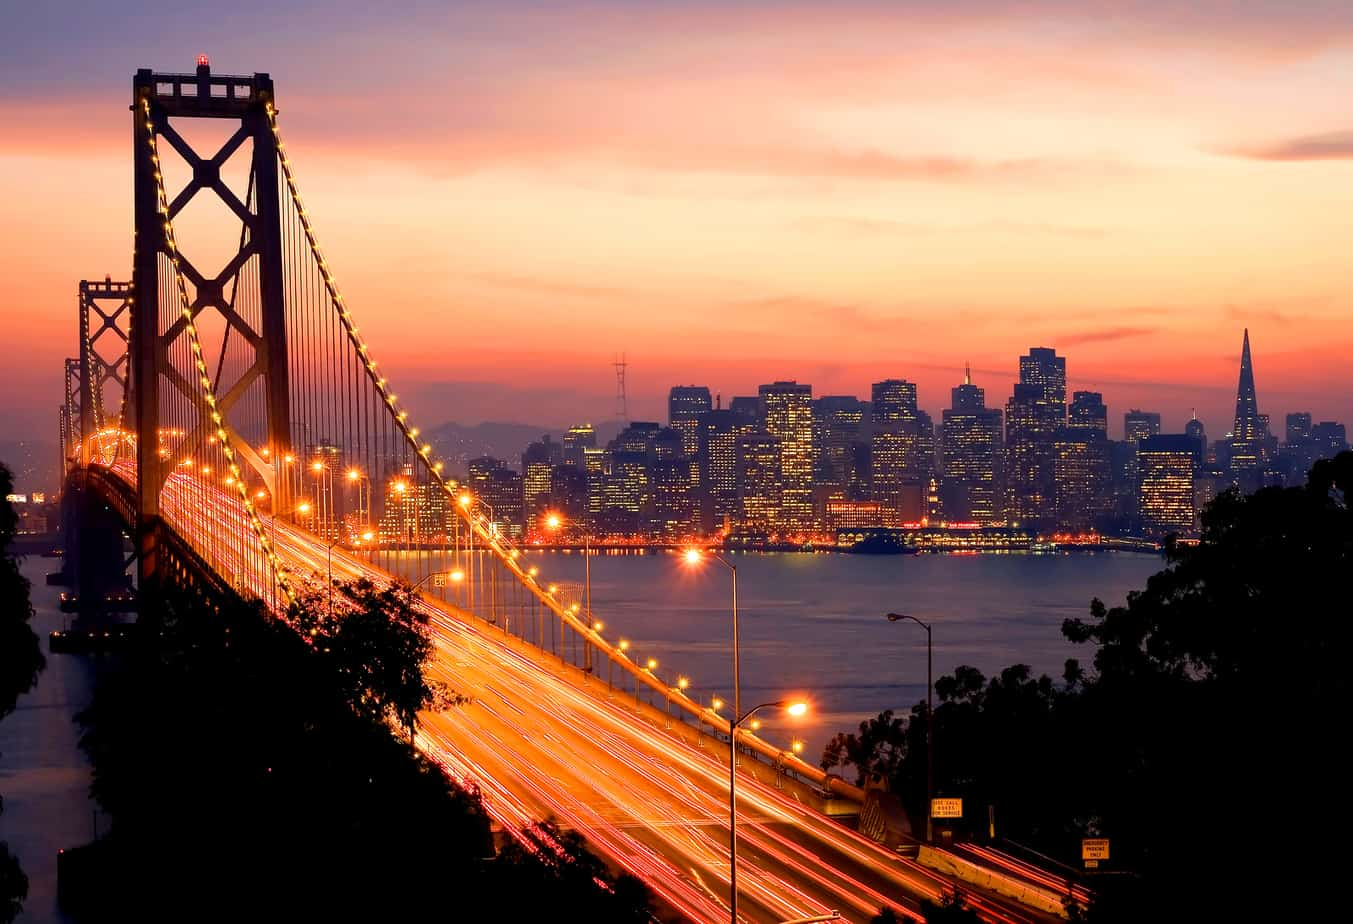 romantic things to do in san francisco header - sunset from behind golden gate bridge city skyline in distance